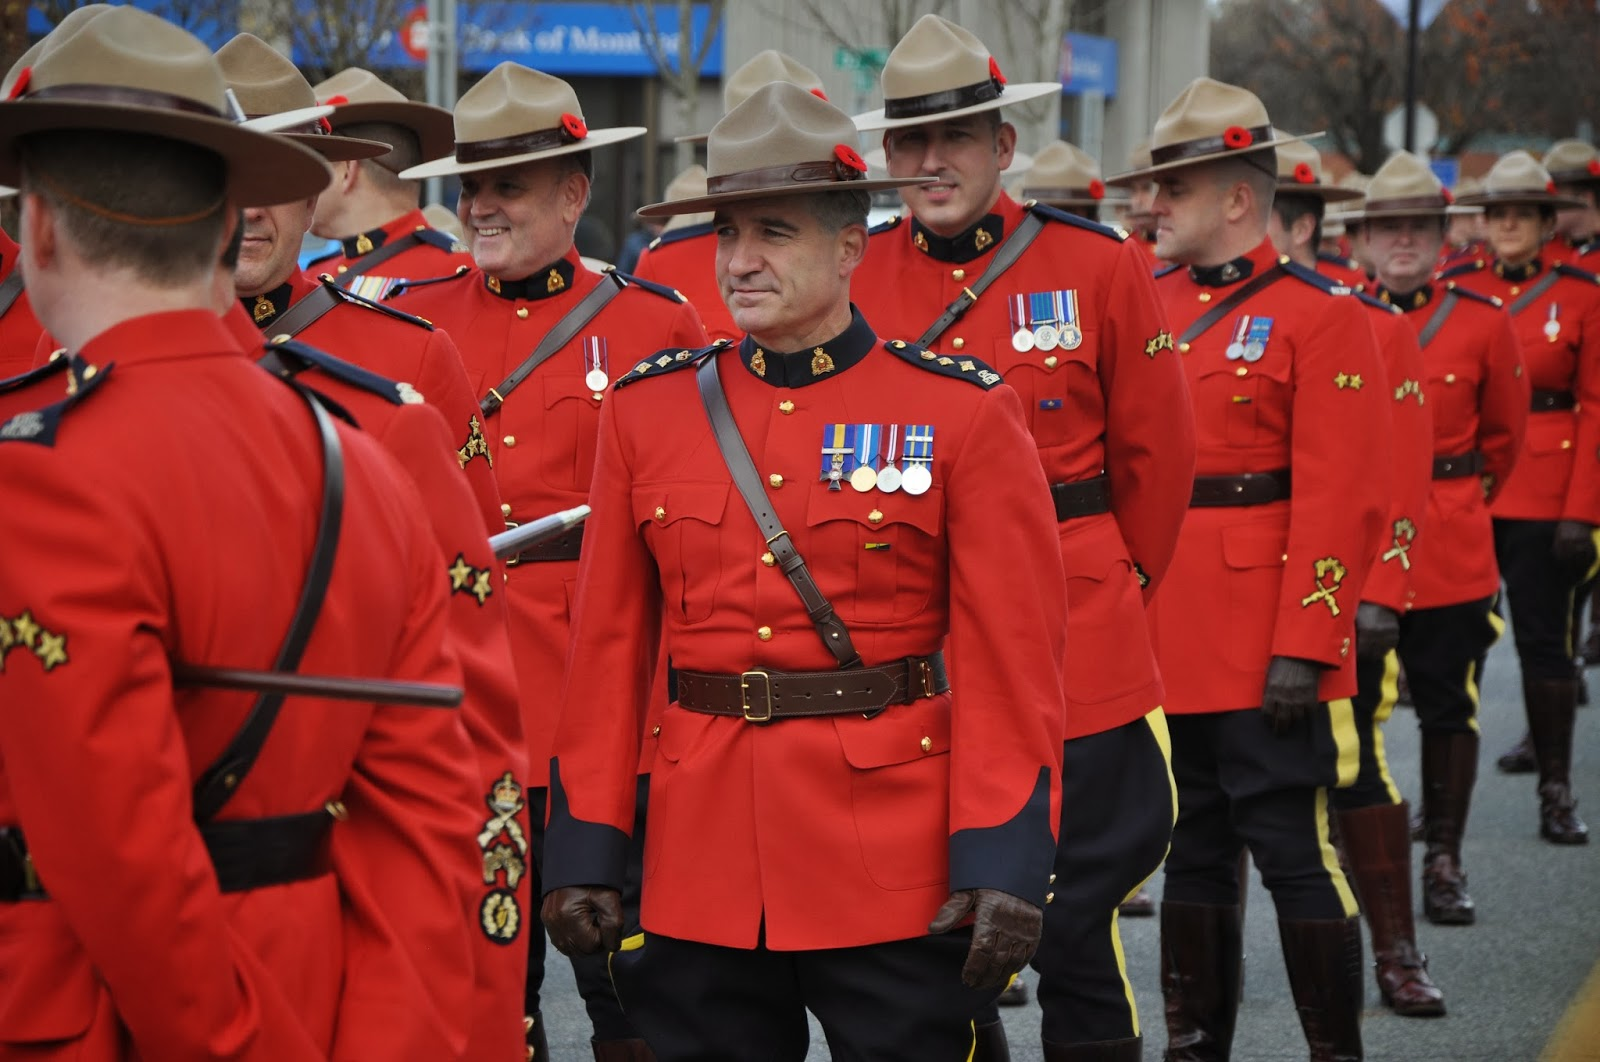 Orbis Catholicus Secundus Royal Canadian Mounted Police